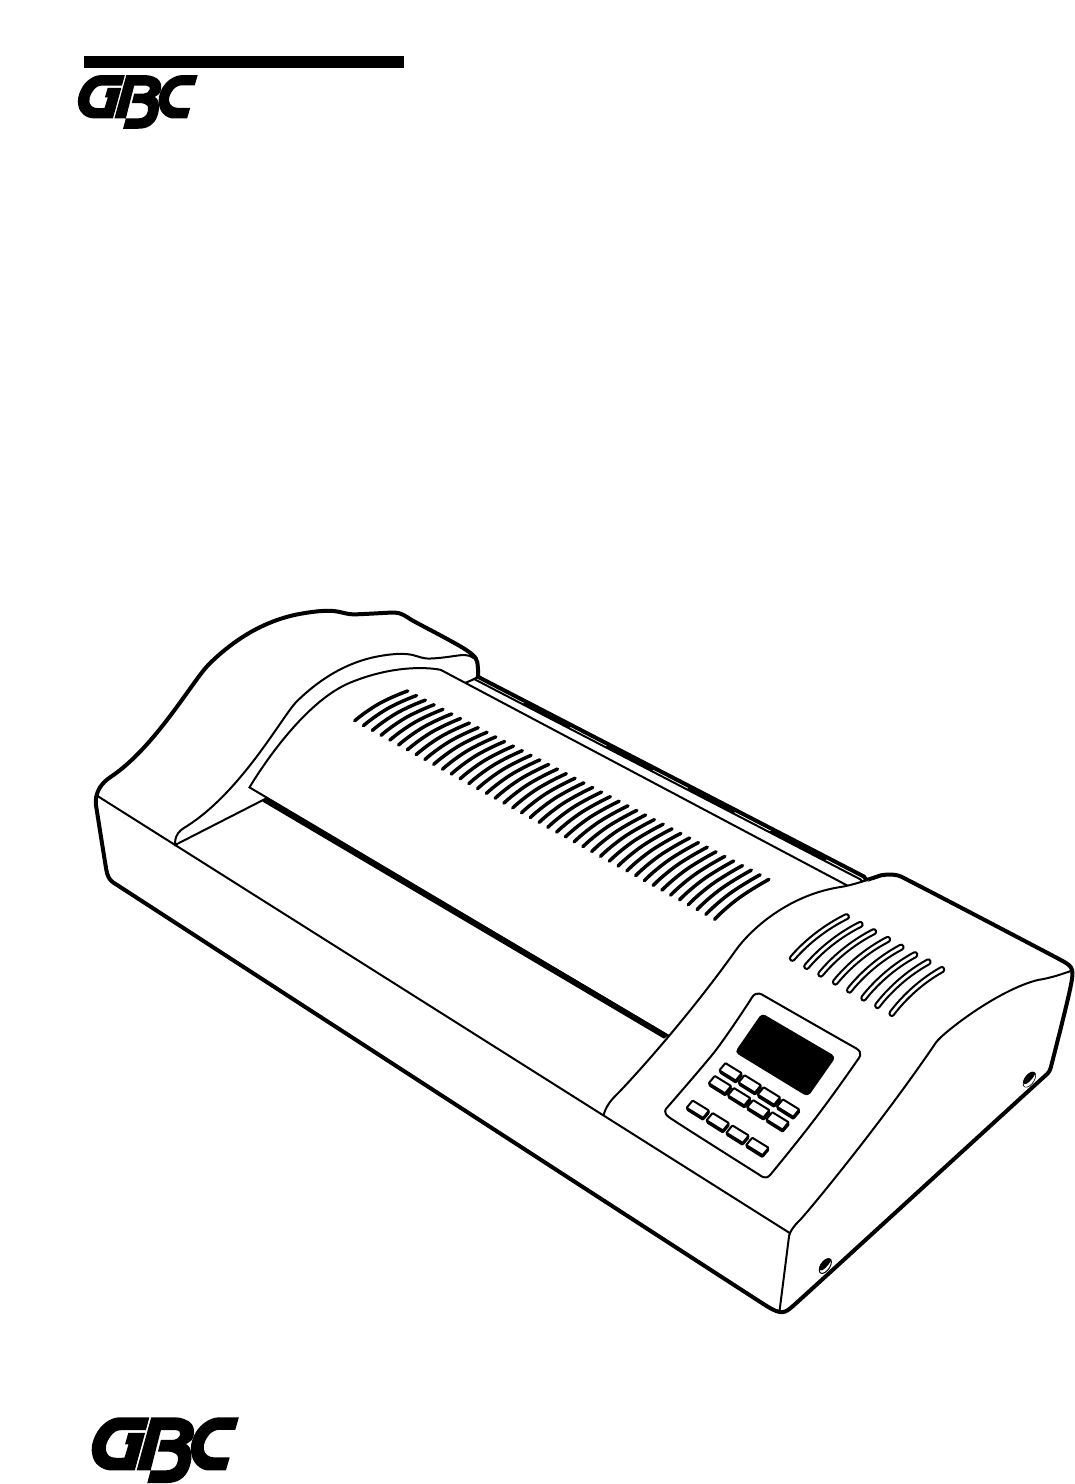 Gbc Binding Machine 13 Pro User Guide